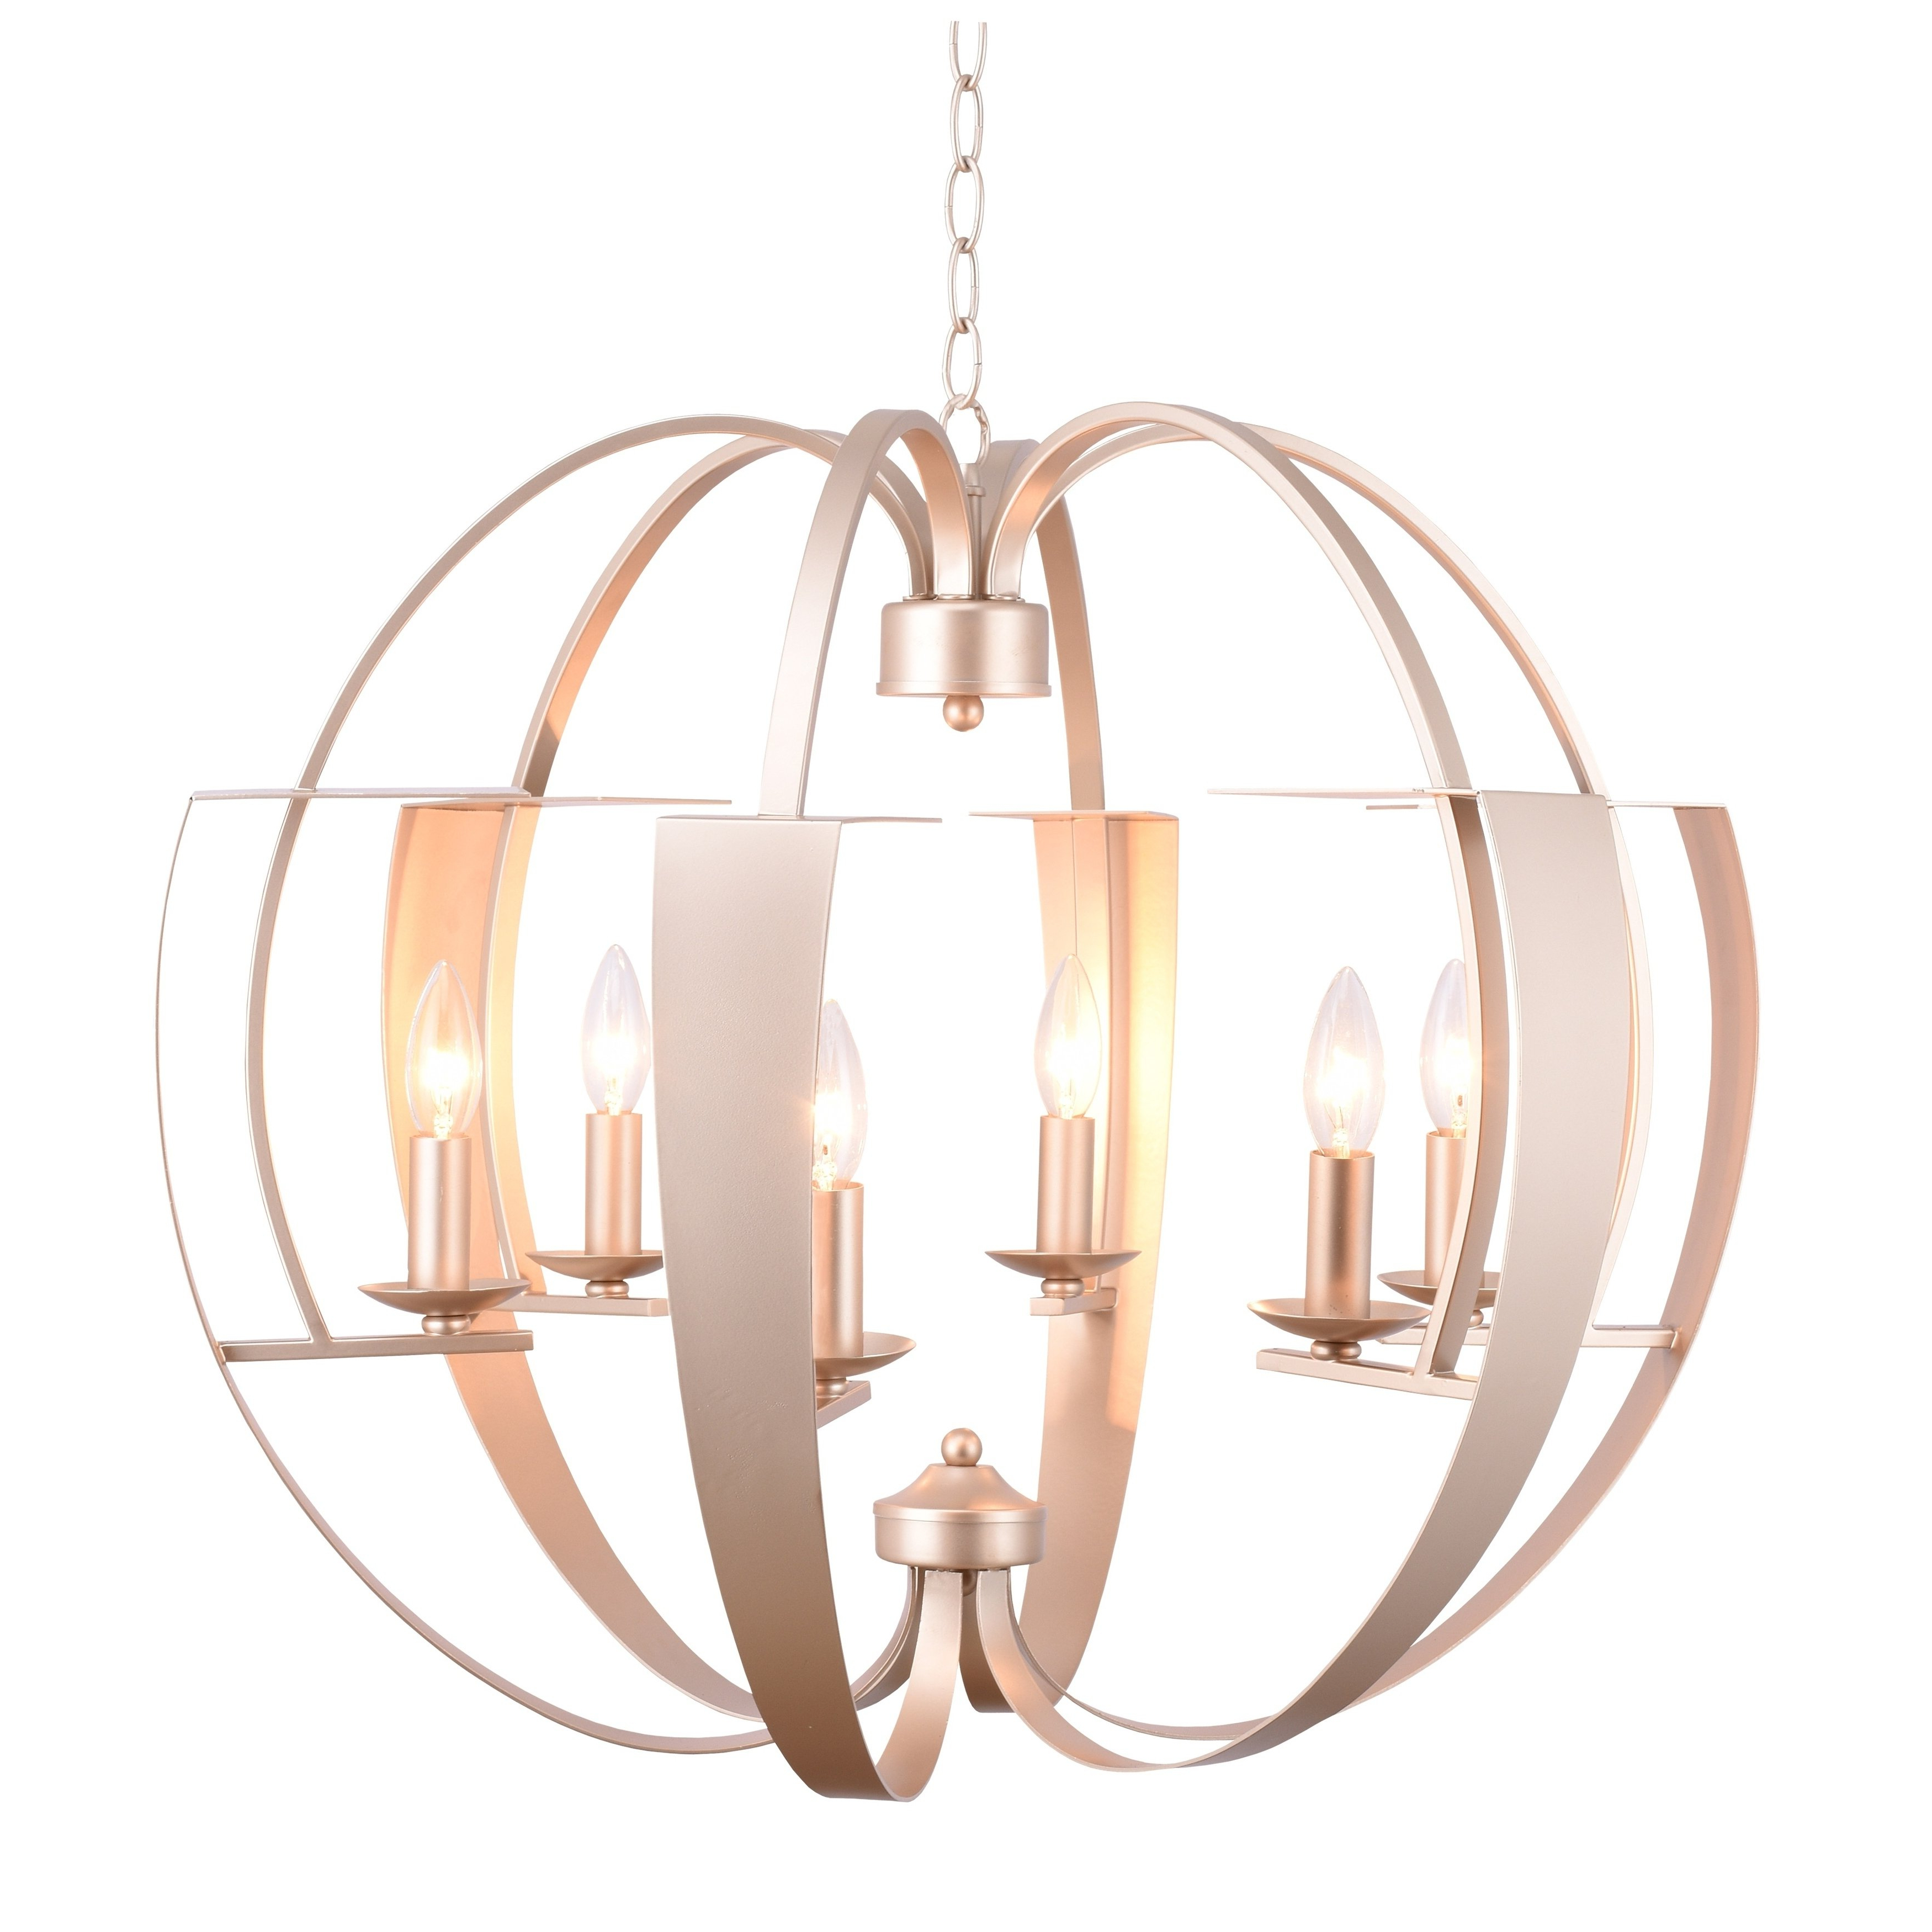 Donna 6-Light Globe Chandeliers for Widely used 6 Light Chandelier With Pewter Finish In 2019